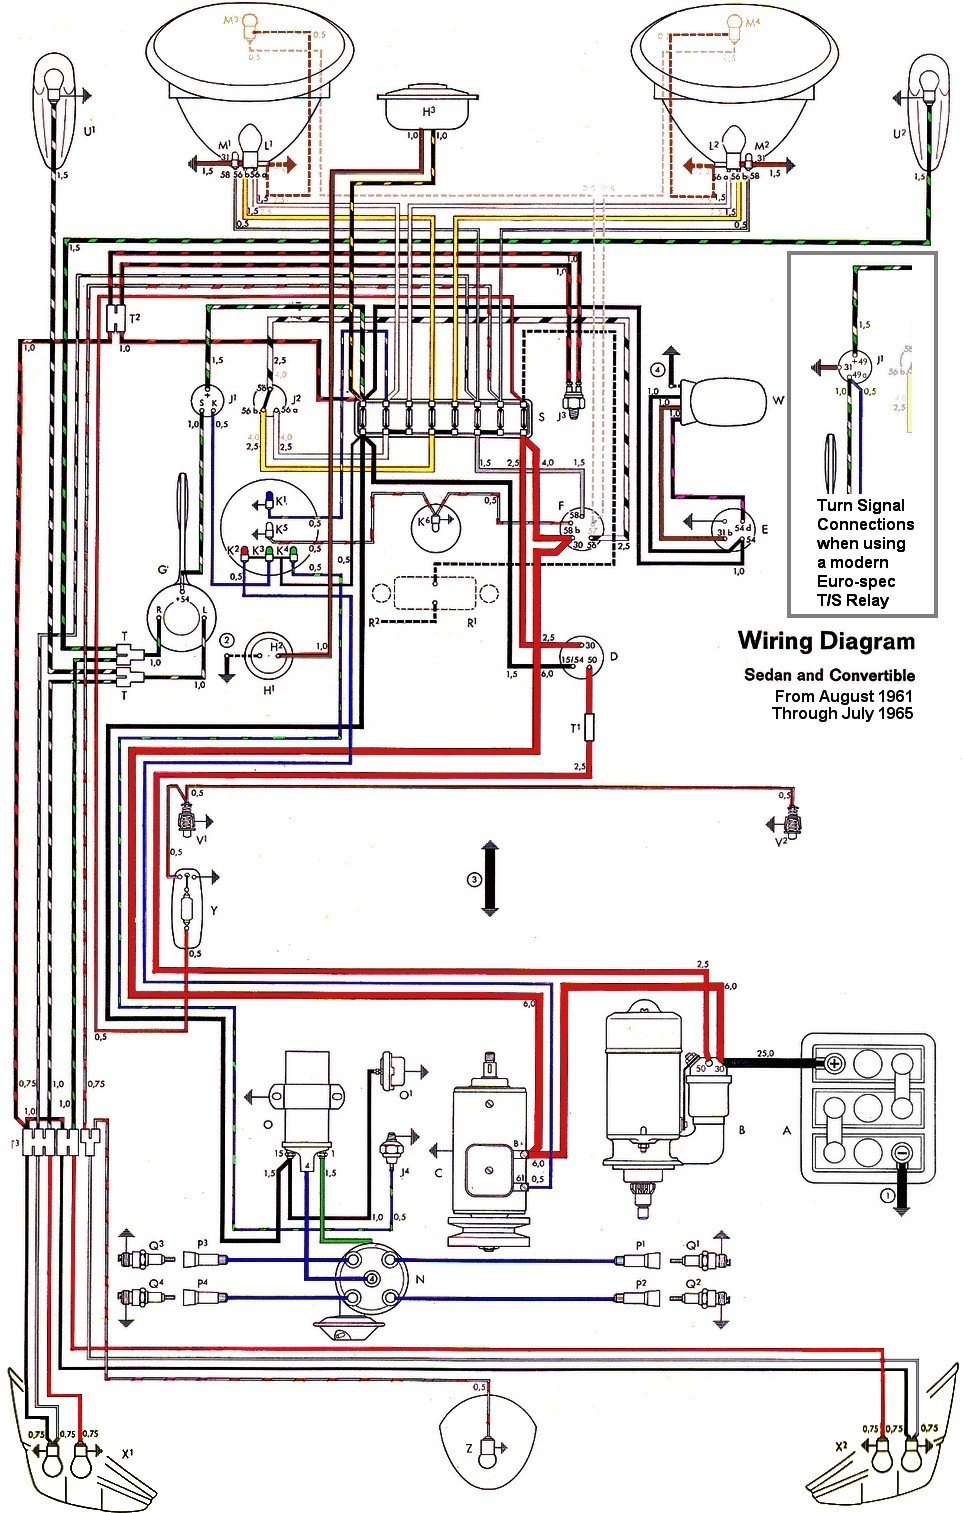 bug_62 65withinset wiring diagram vw beetle sedan and convertible 1961 1965 vw 1971 vw bus wiring diagram at cos-gaming.co